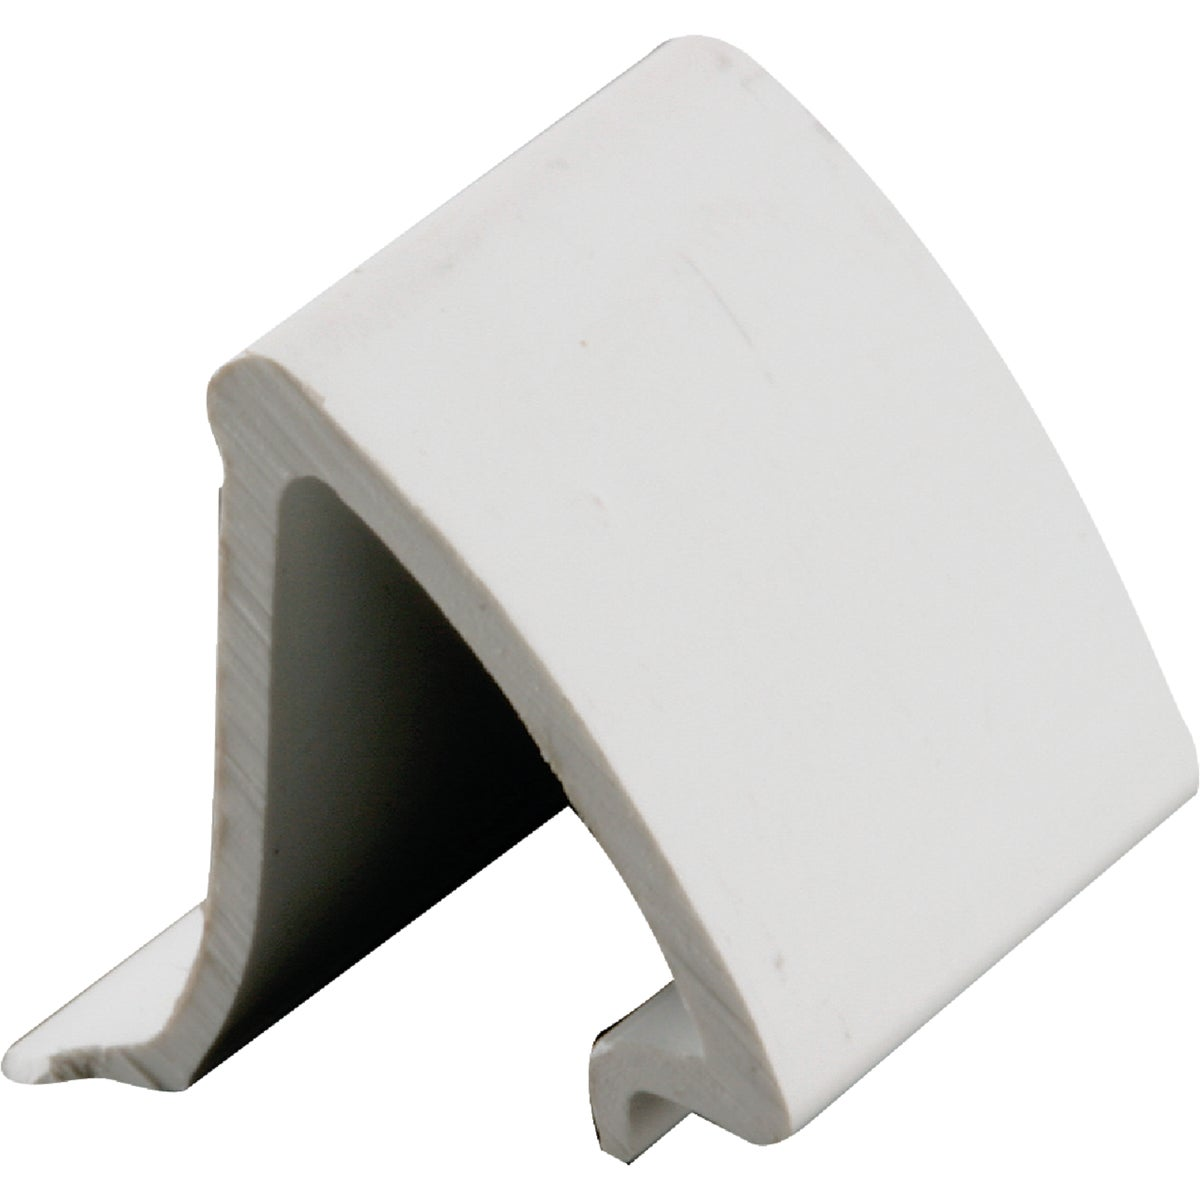 "72"" WHT RIGID SPLINE - P7853 by Prime Line Products"